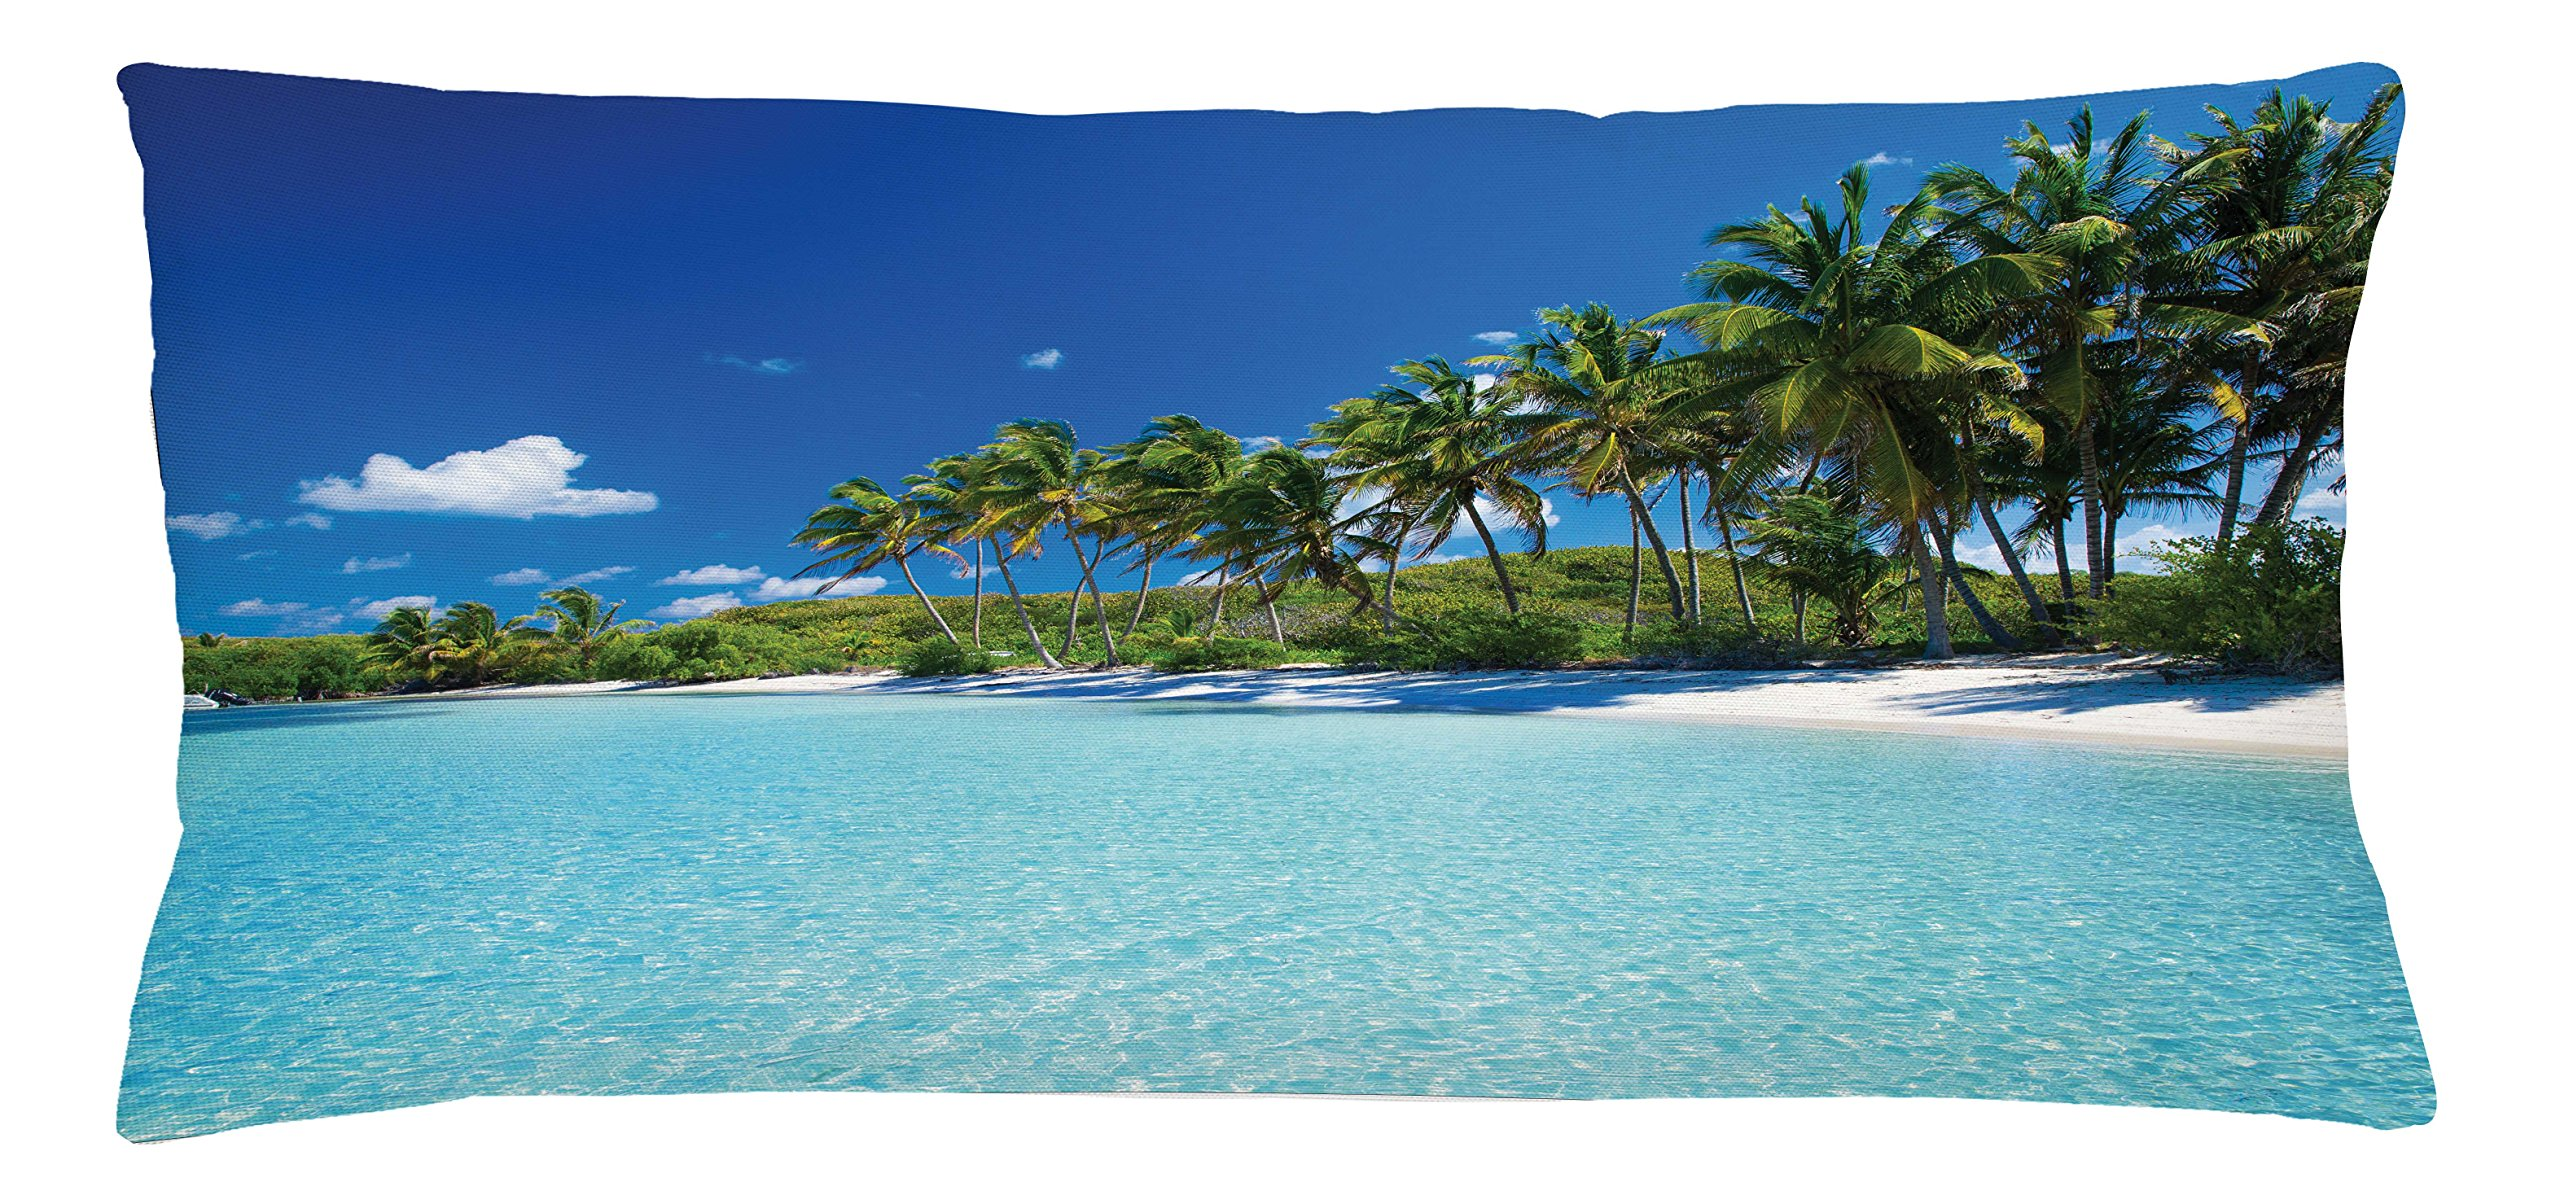 Ambesonne Ocean Throw Pillow Cushion Cover, Relaxing Beach Resort Spa Palm Trees and Sea Exotic Caribbean Coastline, Decorative Square Accent Pillow Case, 36 X 16 inches, Turquoise Blue Green